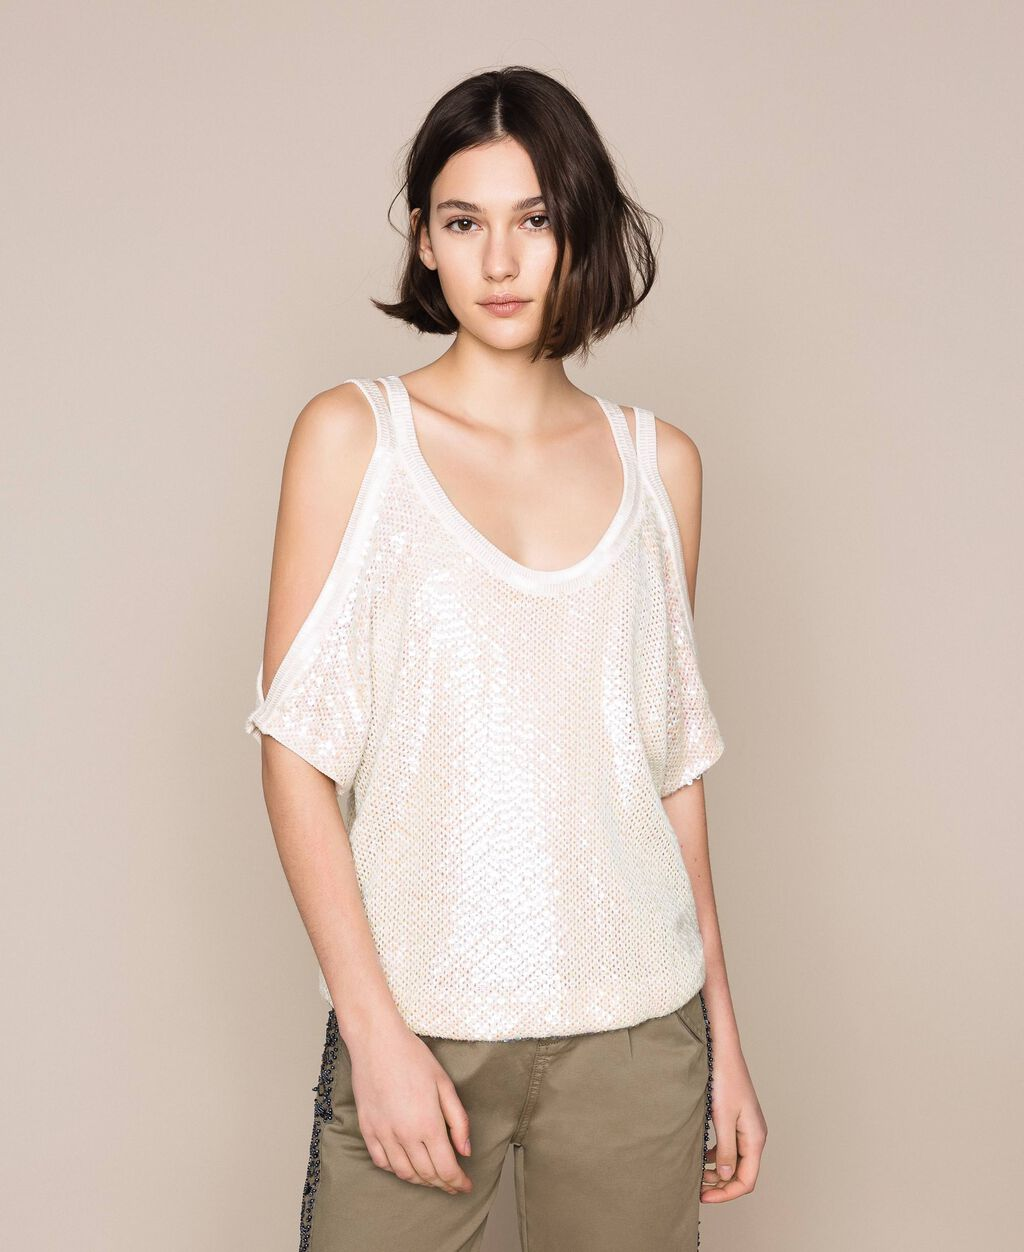 Mesh stitch jumper with sequins